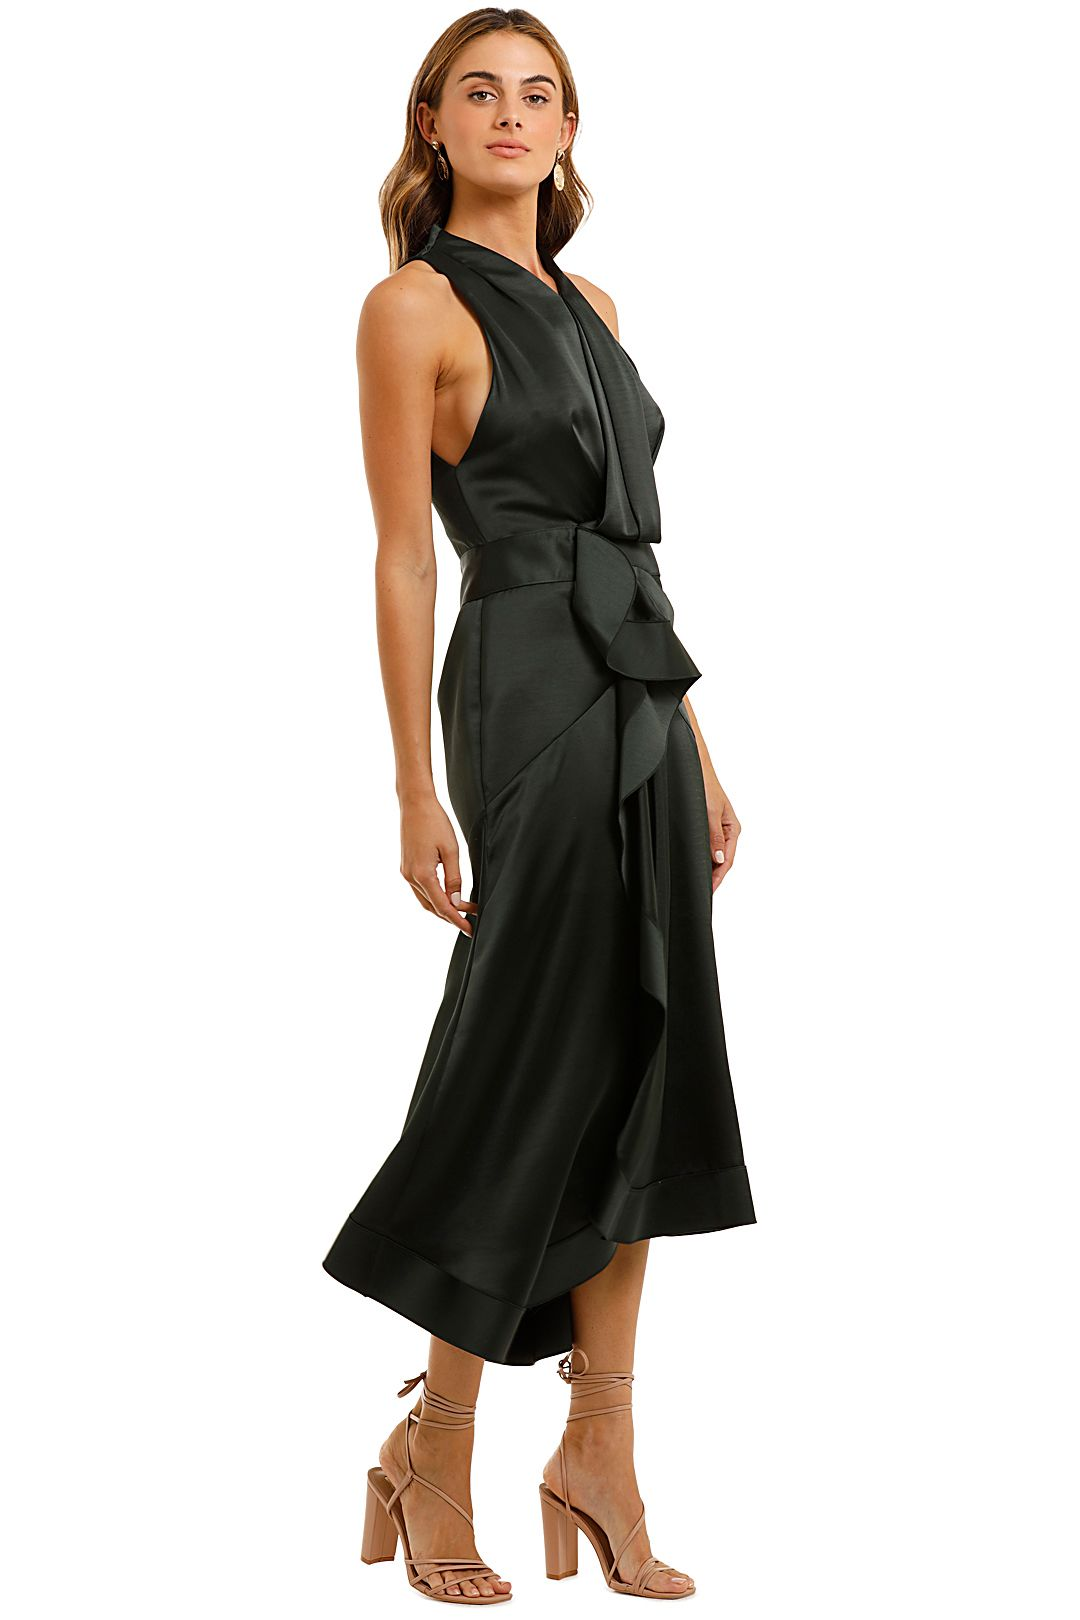 Acler Millbank Dress Forest Green Draped